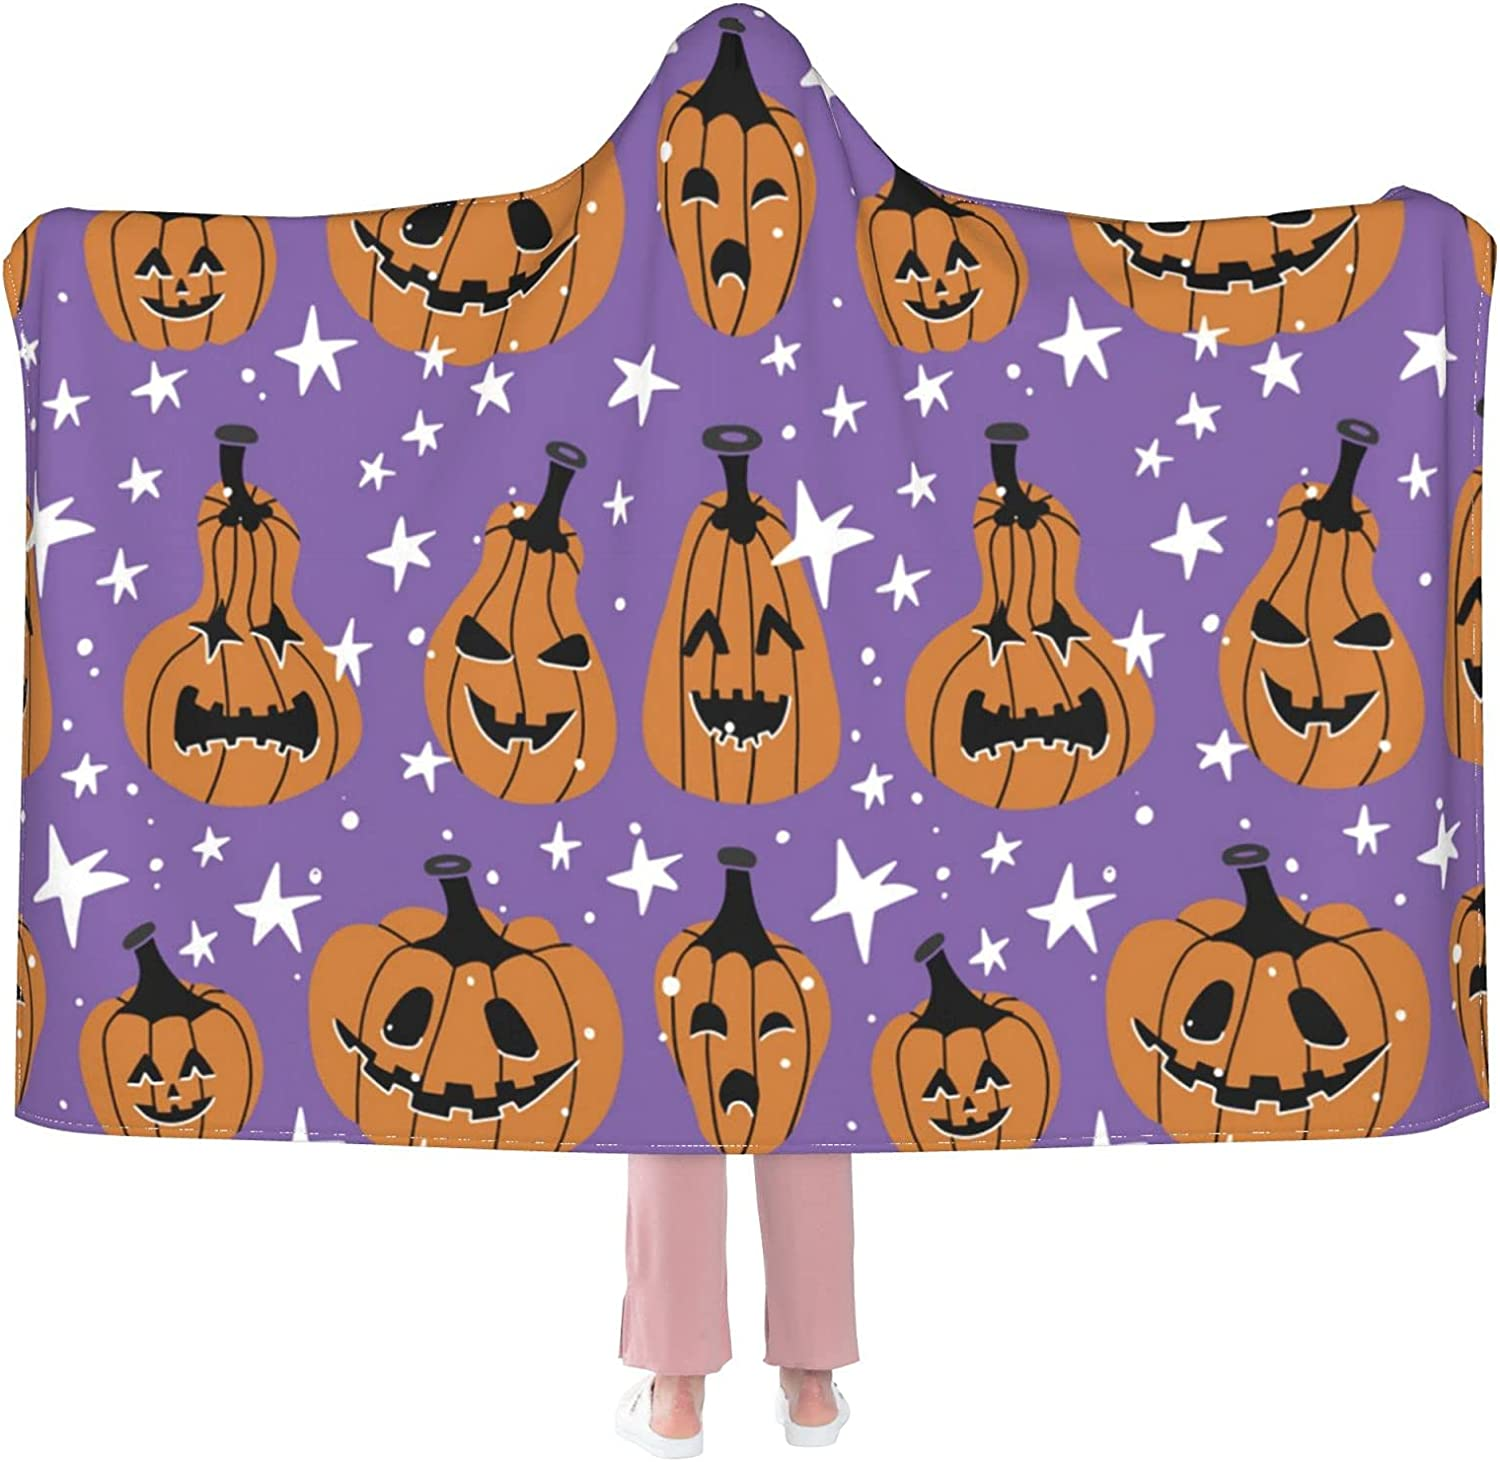 Sordiw Halloween Pumpkin Hooded Blanket Soft S Flannel New products world's highest quality popular Super Genuine for